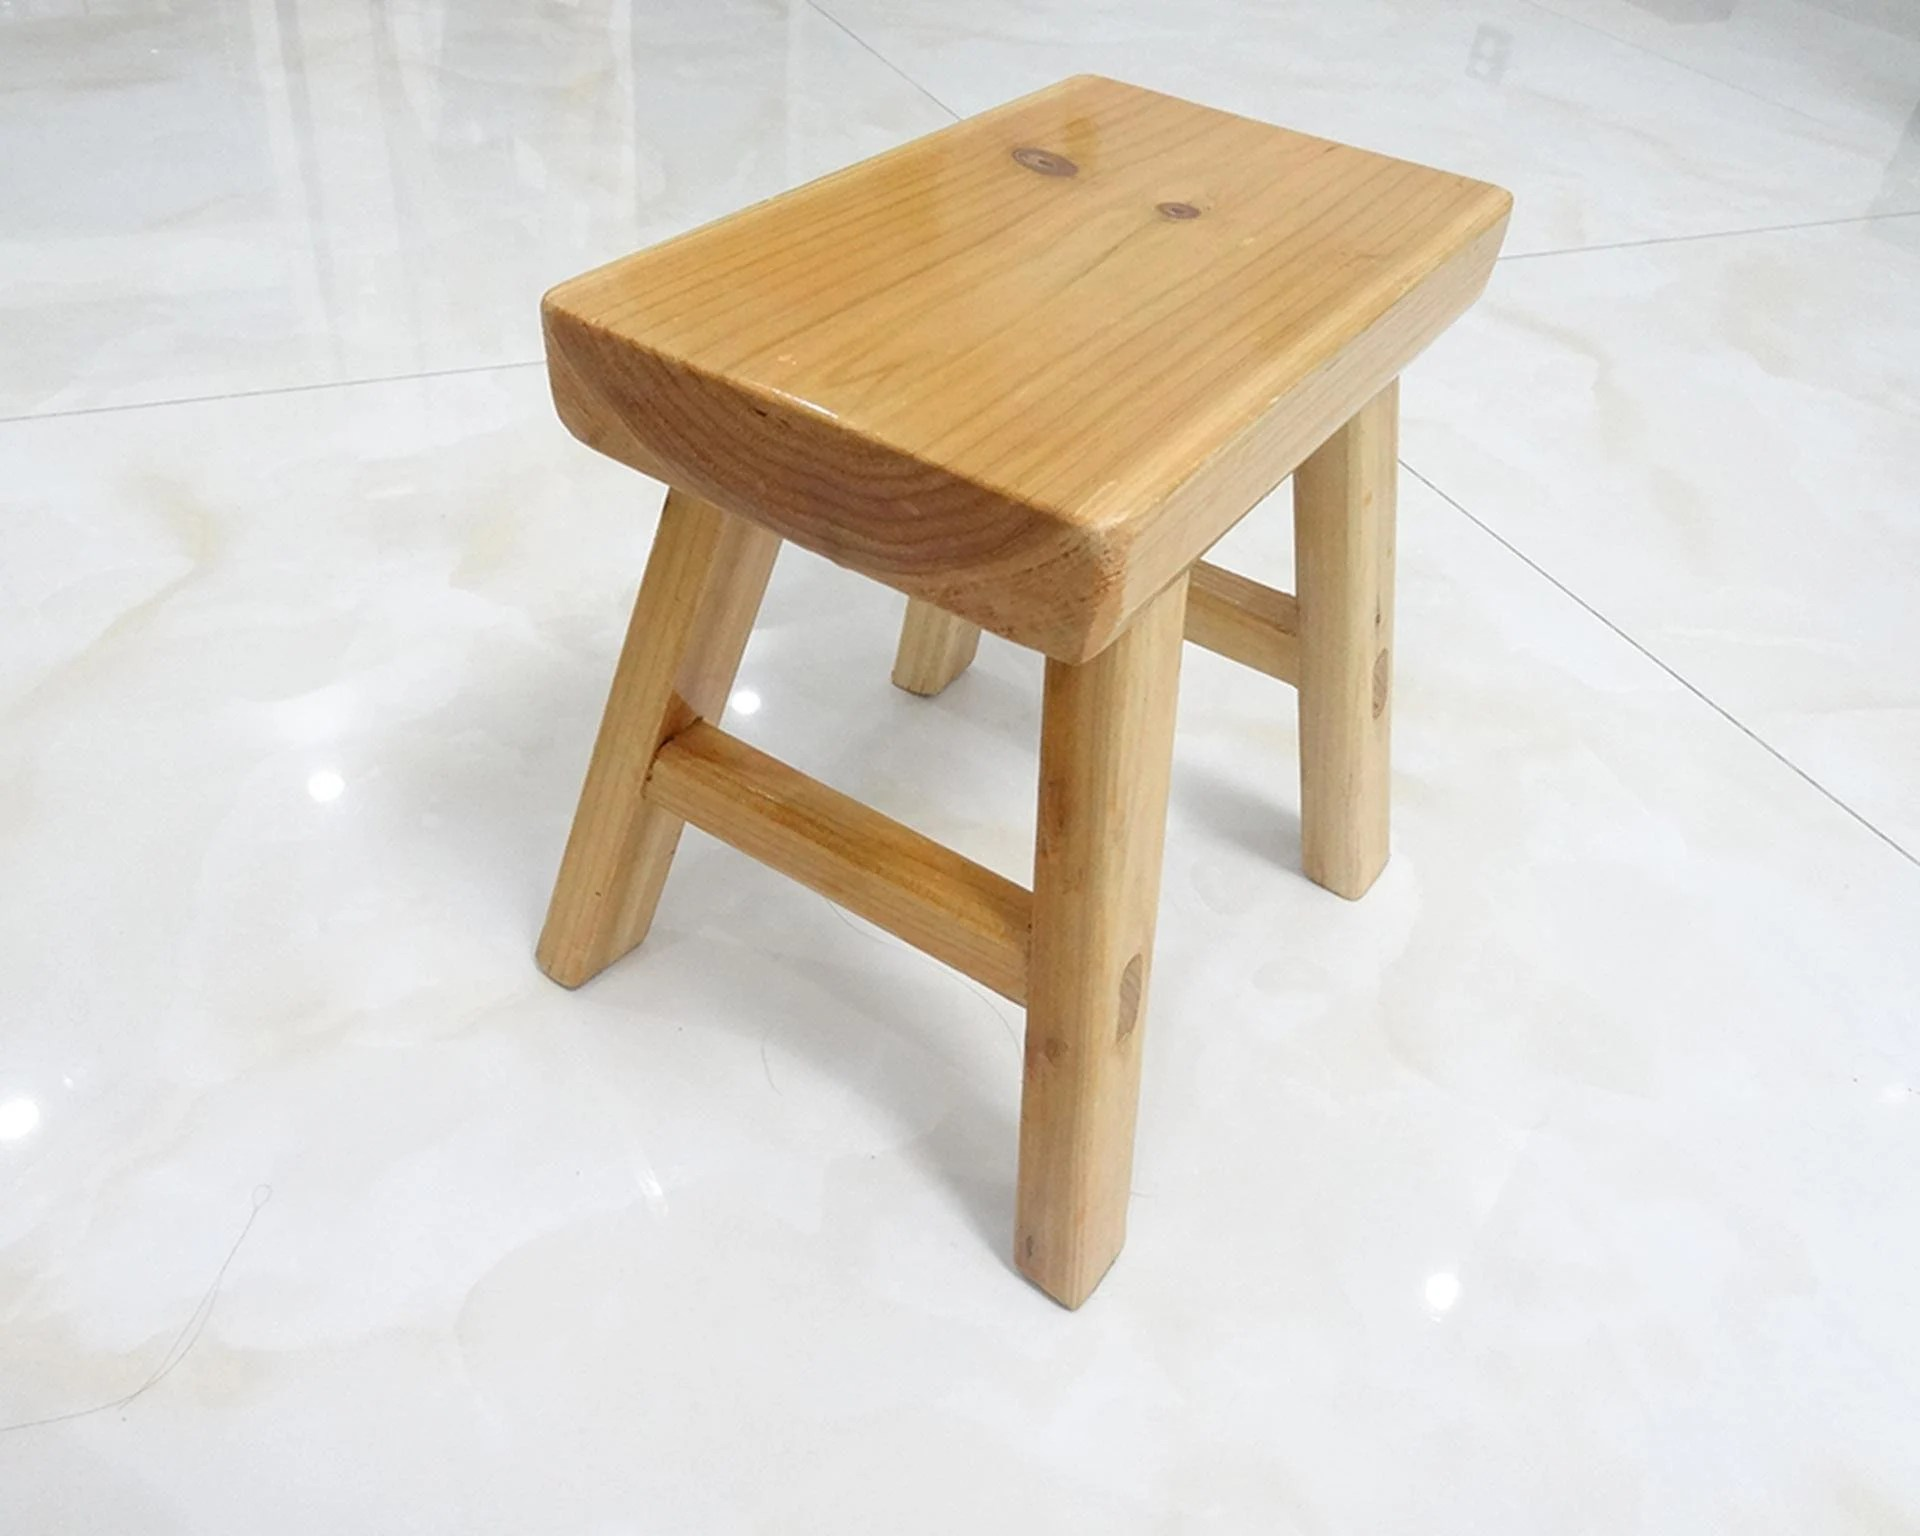 small wooden chair mid century swivel wood etsy new durable solid portable stool living room bench stools